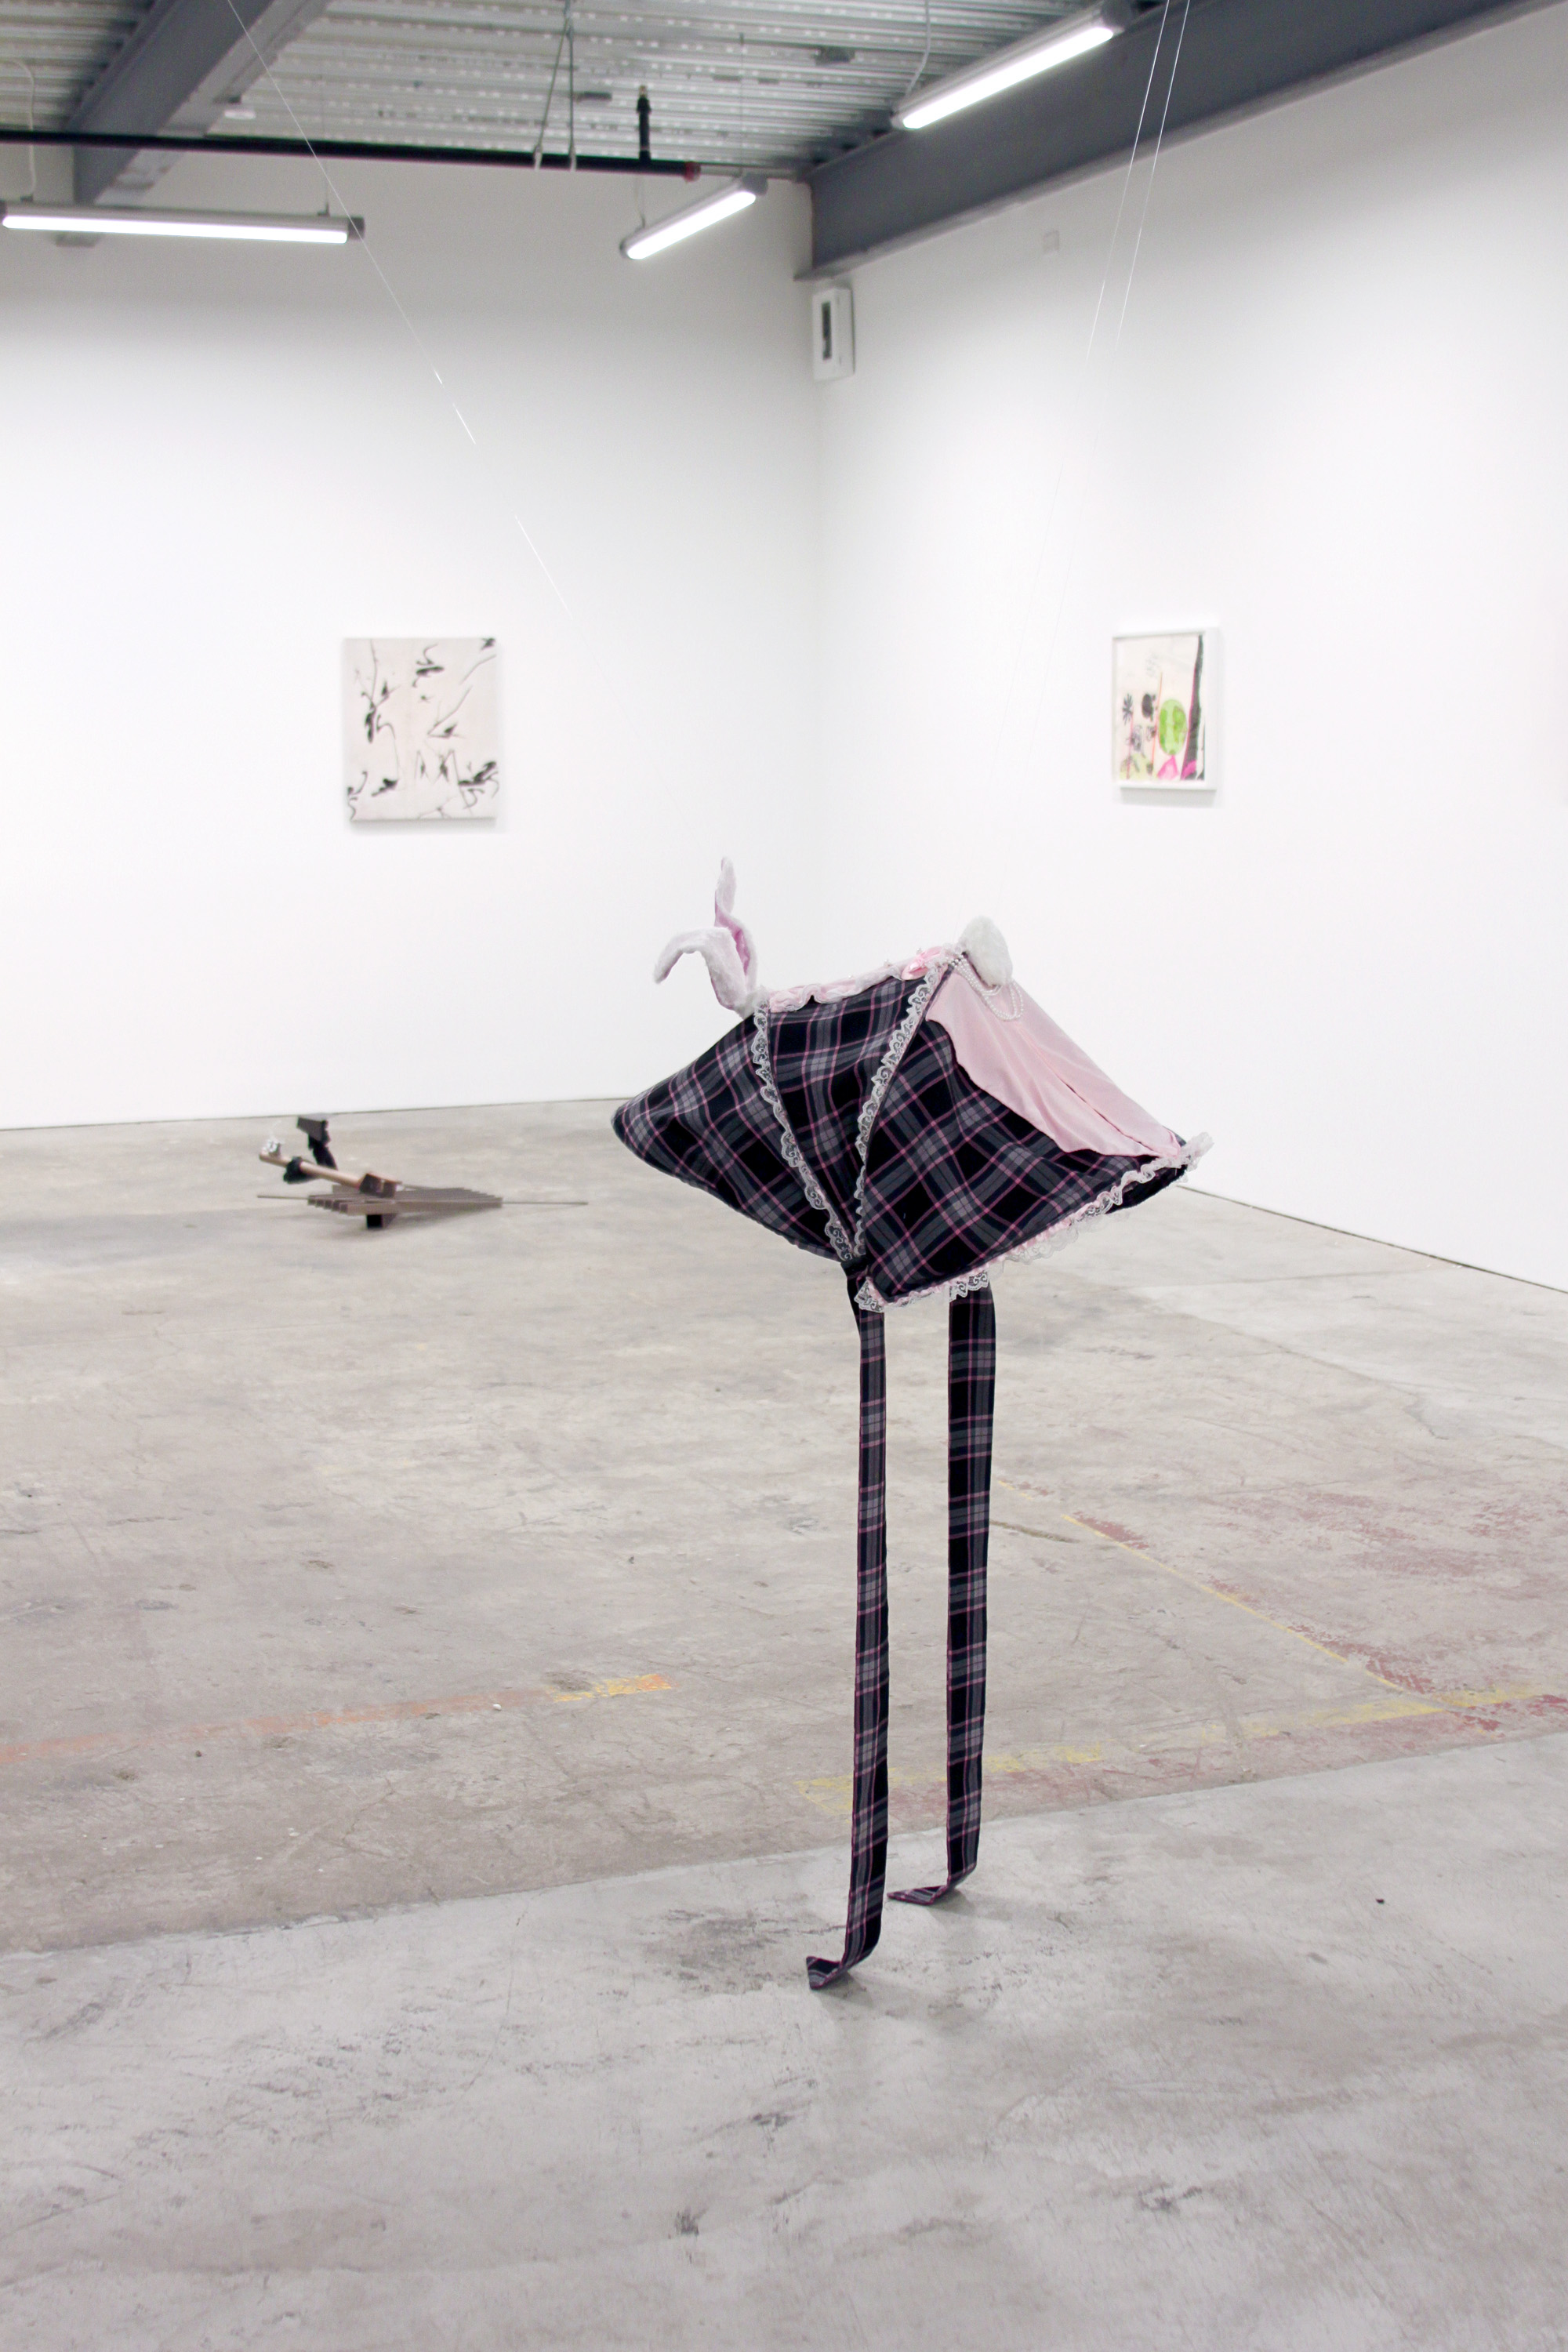 FLANNERY SILVA   Gripper Bon (Bunny Suit) , 2016, JJ Cole Broadway Stroller Canopy, Playboy Bunny Suit costume, fabric, accessories